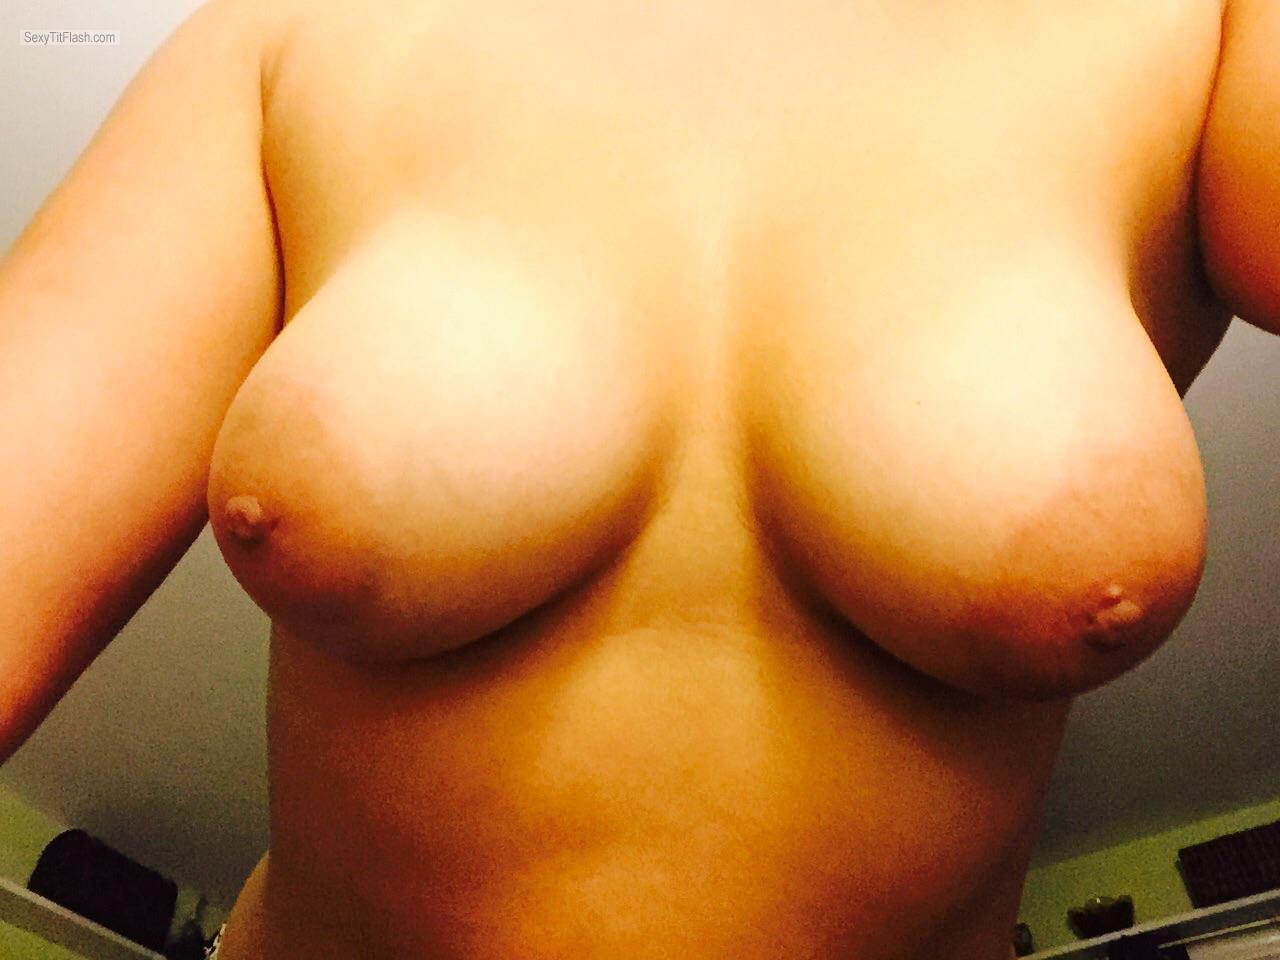 My Big Tits Topless Selfie by Bb